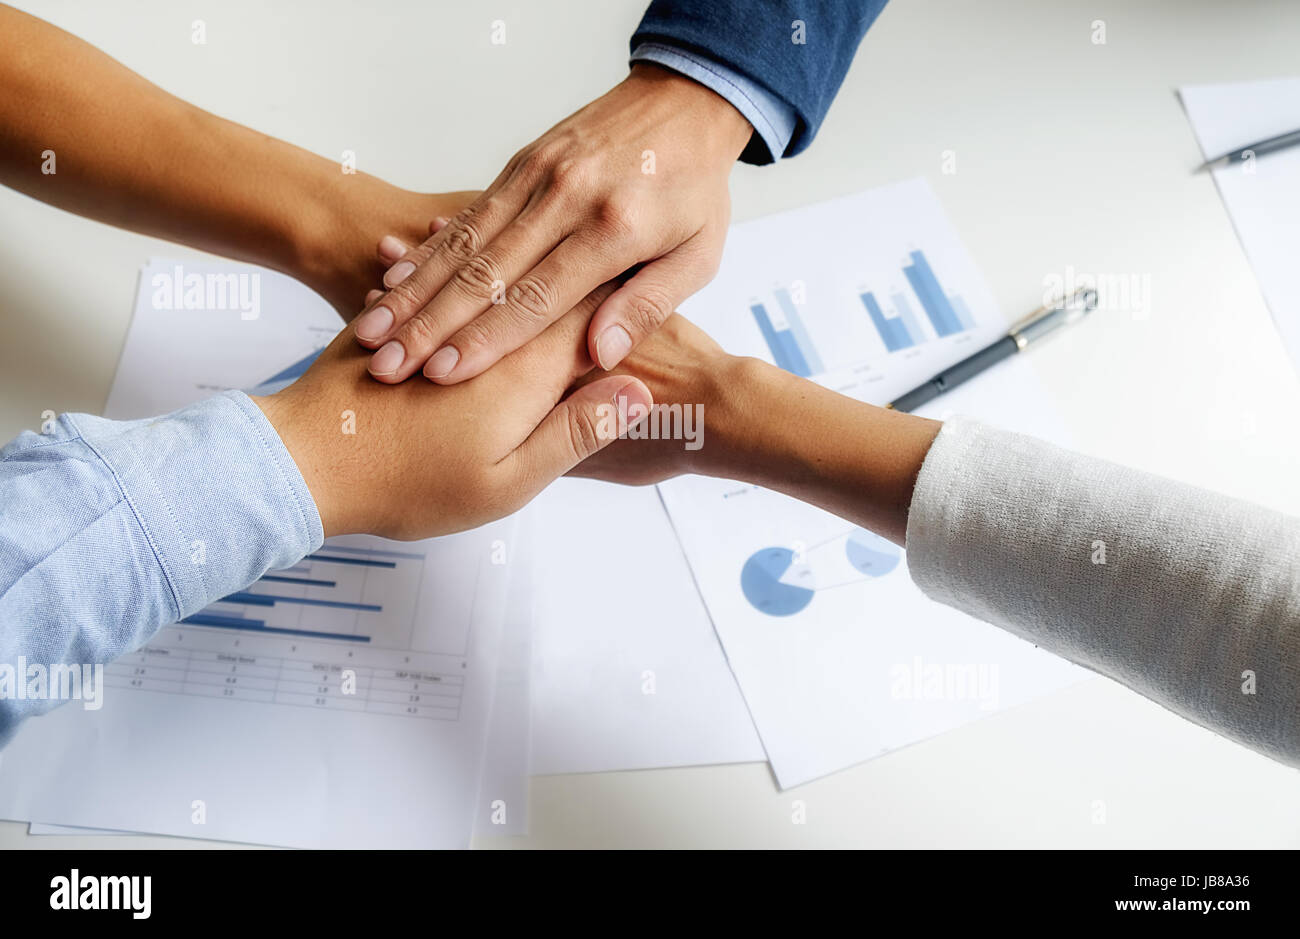 Teamwork Join Hands Support Together Concept. Business Team Coworker Brainstorming Meeting Concept - Stock Image